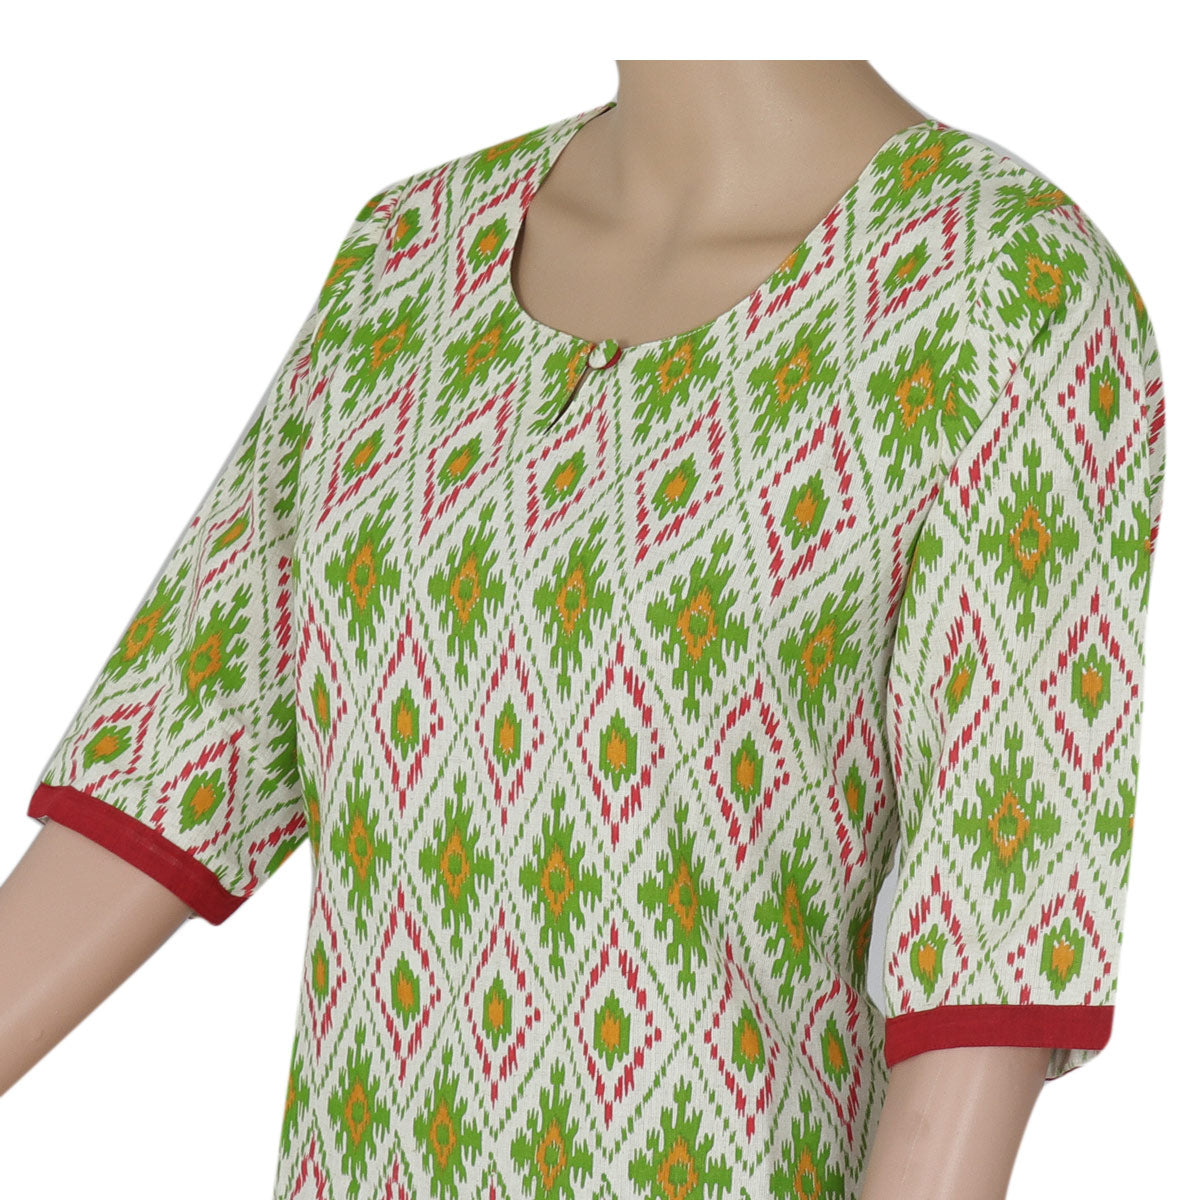 Cotton Kurta Beige and Green with ikkat design for Rs.Rs. 680.00 | kurta by Prashanti Sarees